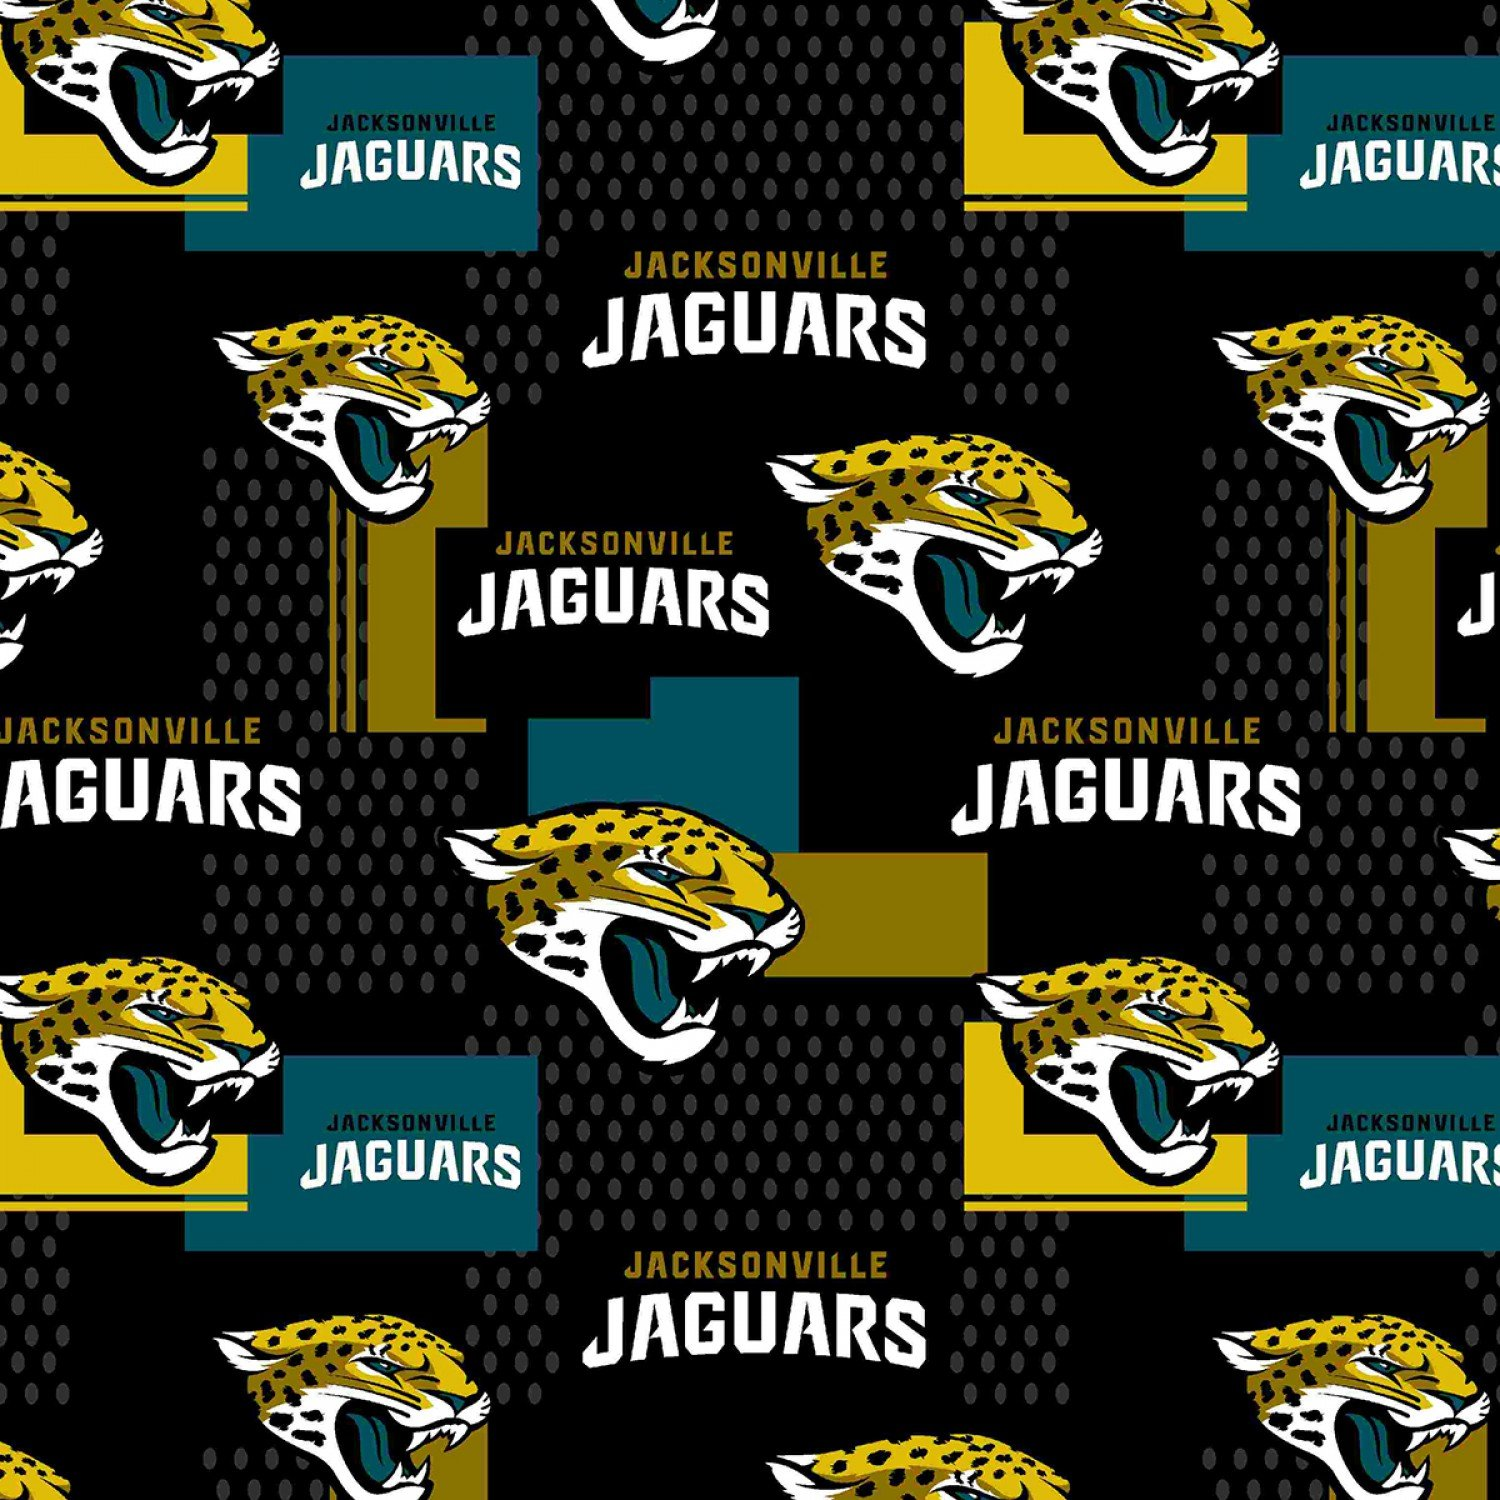 FT-NFL Cotton 14728 D Jacksonville Jaguars